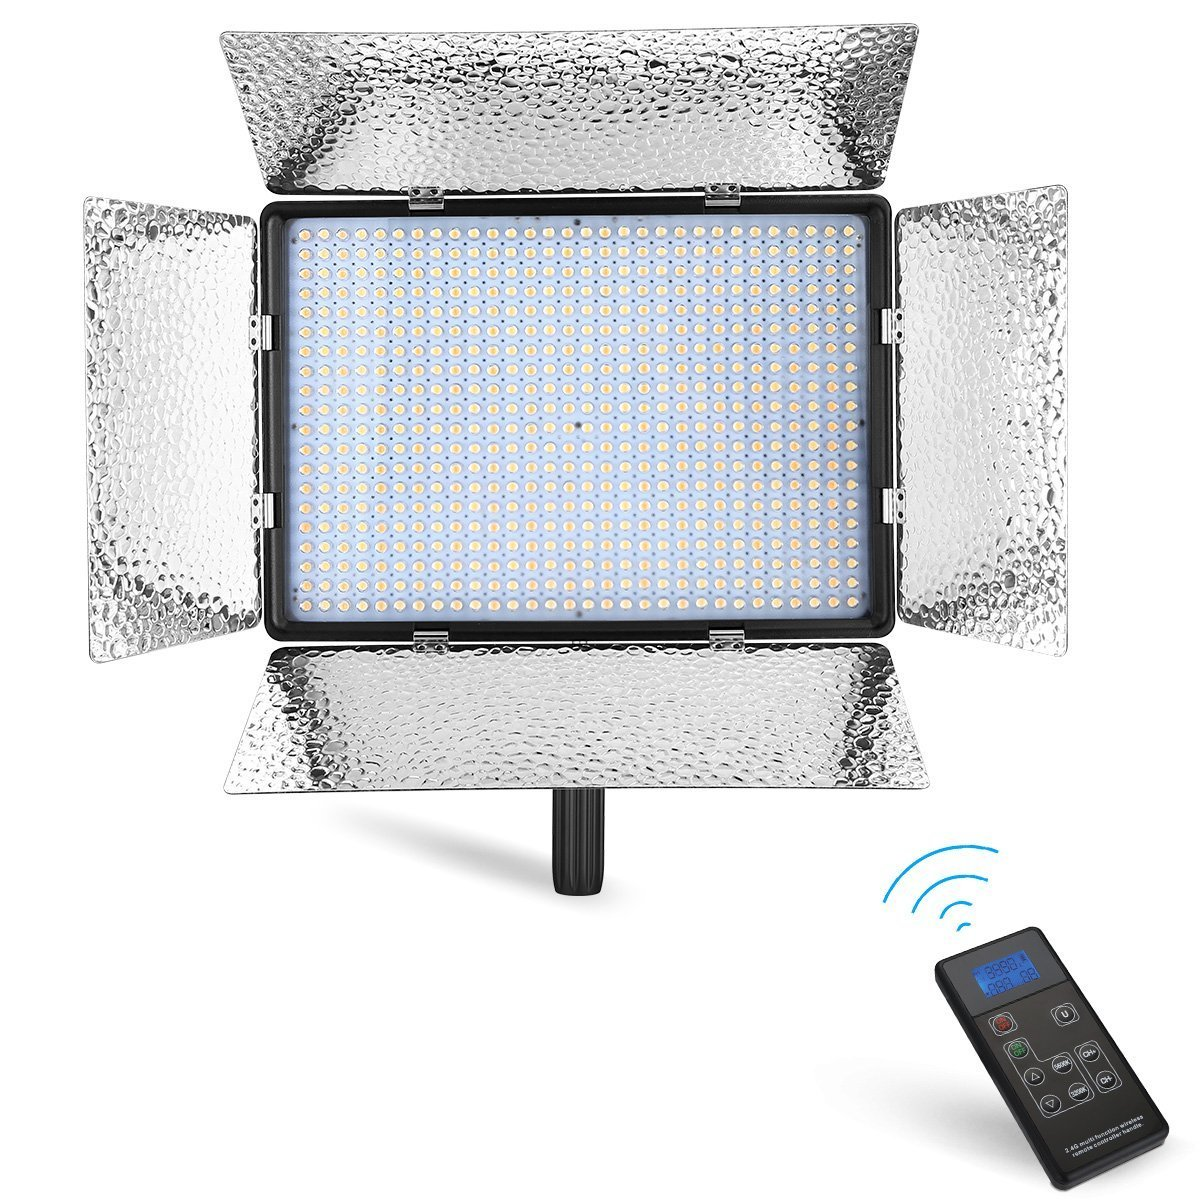 Powerextra 600 Beads Bi-Color 60W Dimmable LED Video Light Panel Adjustable Color Temperature 3200K-5600K, 2.4G Wireless Remote Control, CRI 96+ for Studio, Youtube, Photography, Video Shooting